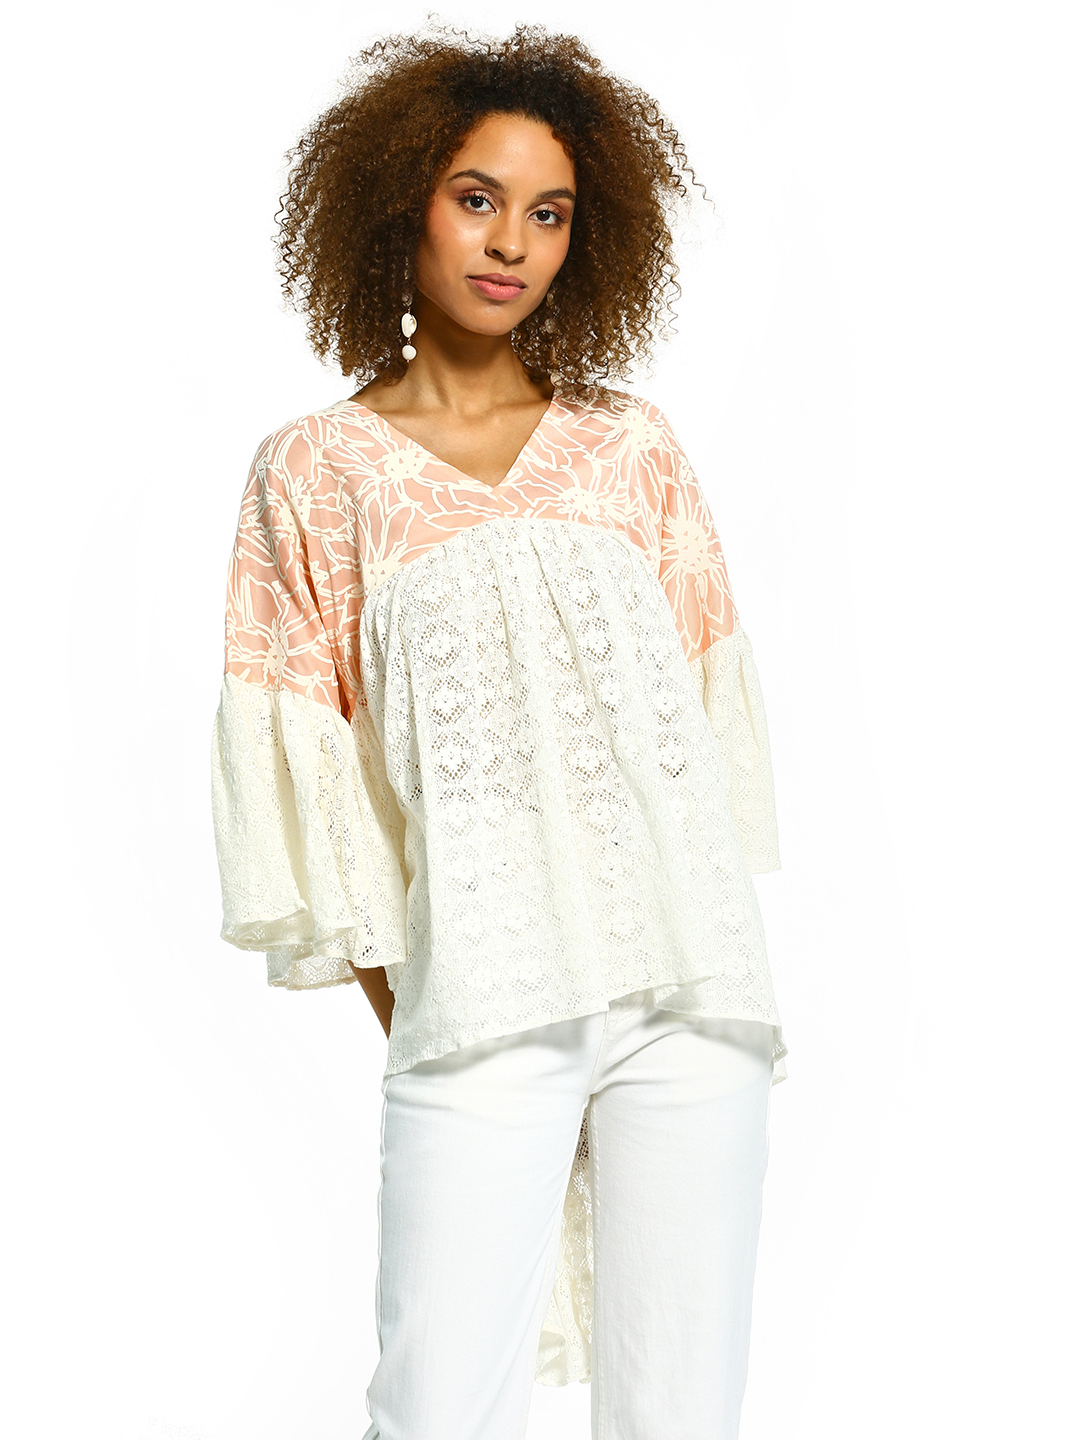 The Paperdoll Company White/Pink Printed Lace High-Low Blouse 1